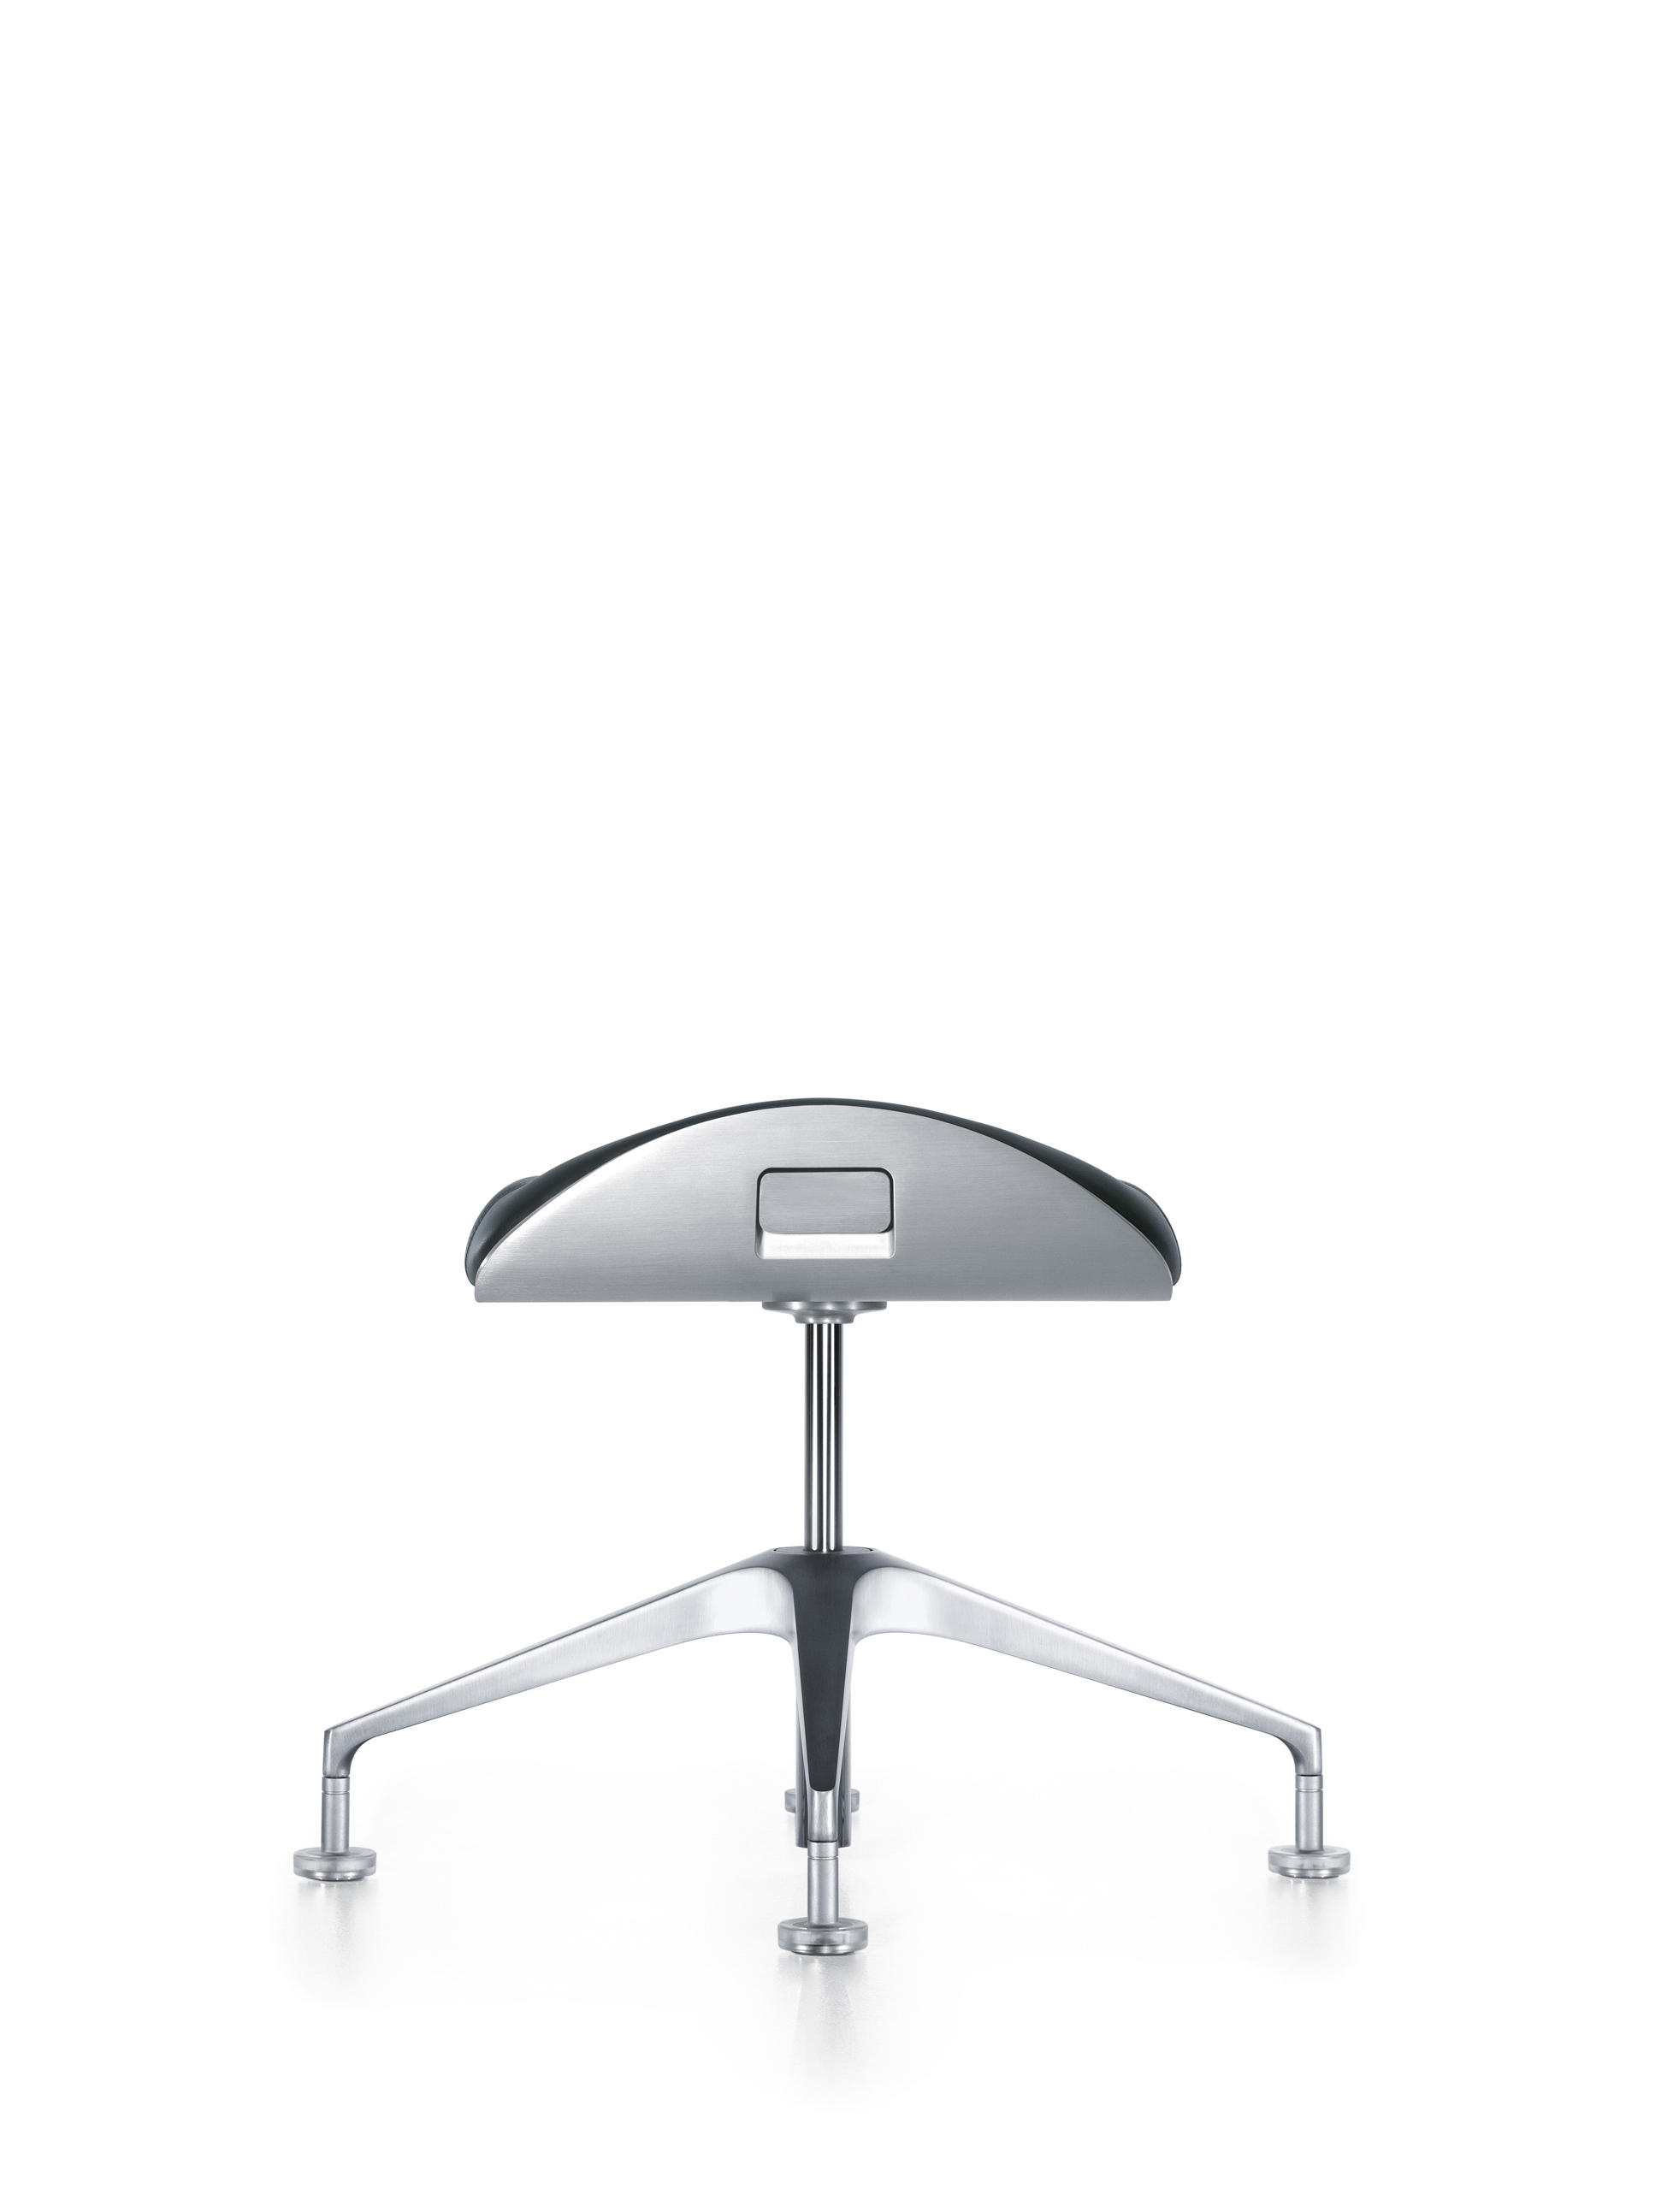 SILVER 100S - Swivel stools from Interstuhl Büromöbel GmbH & Co. KG ...